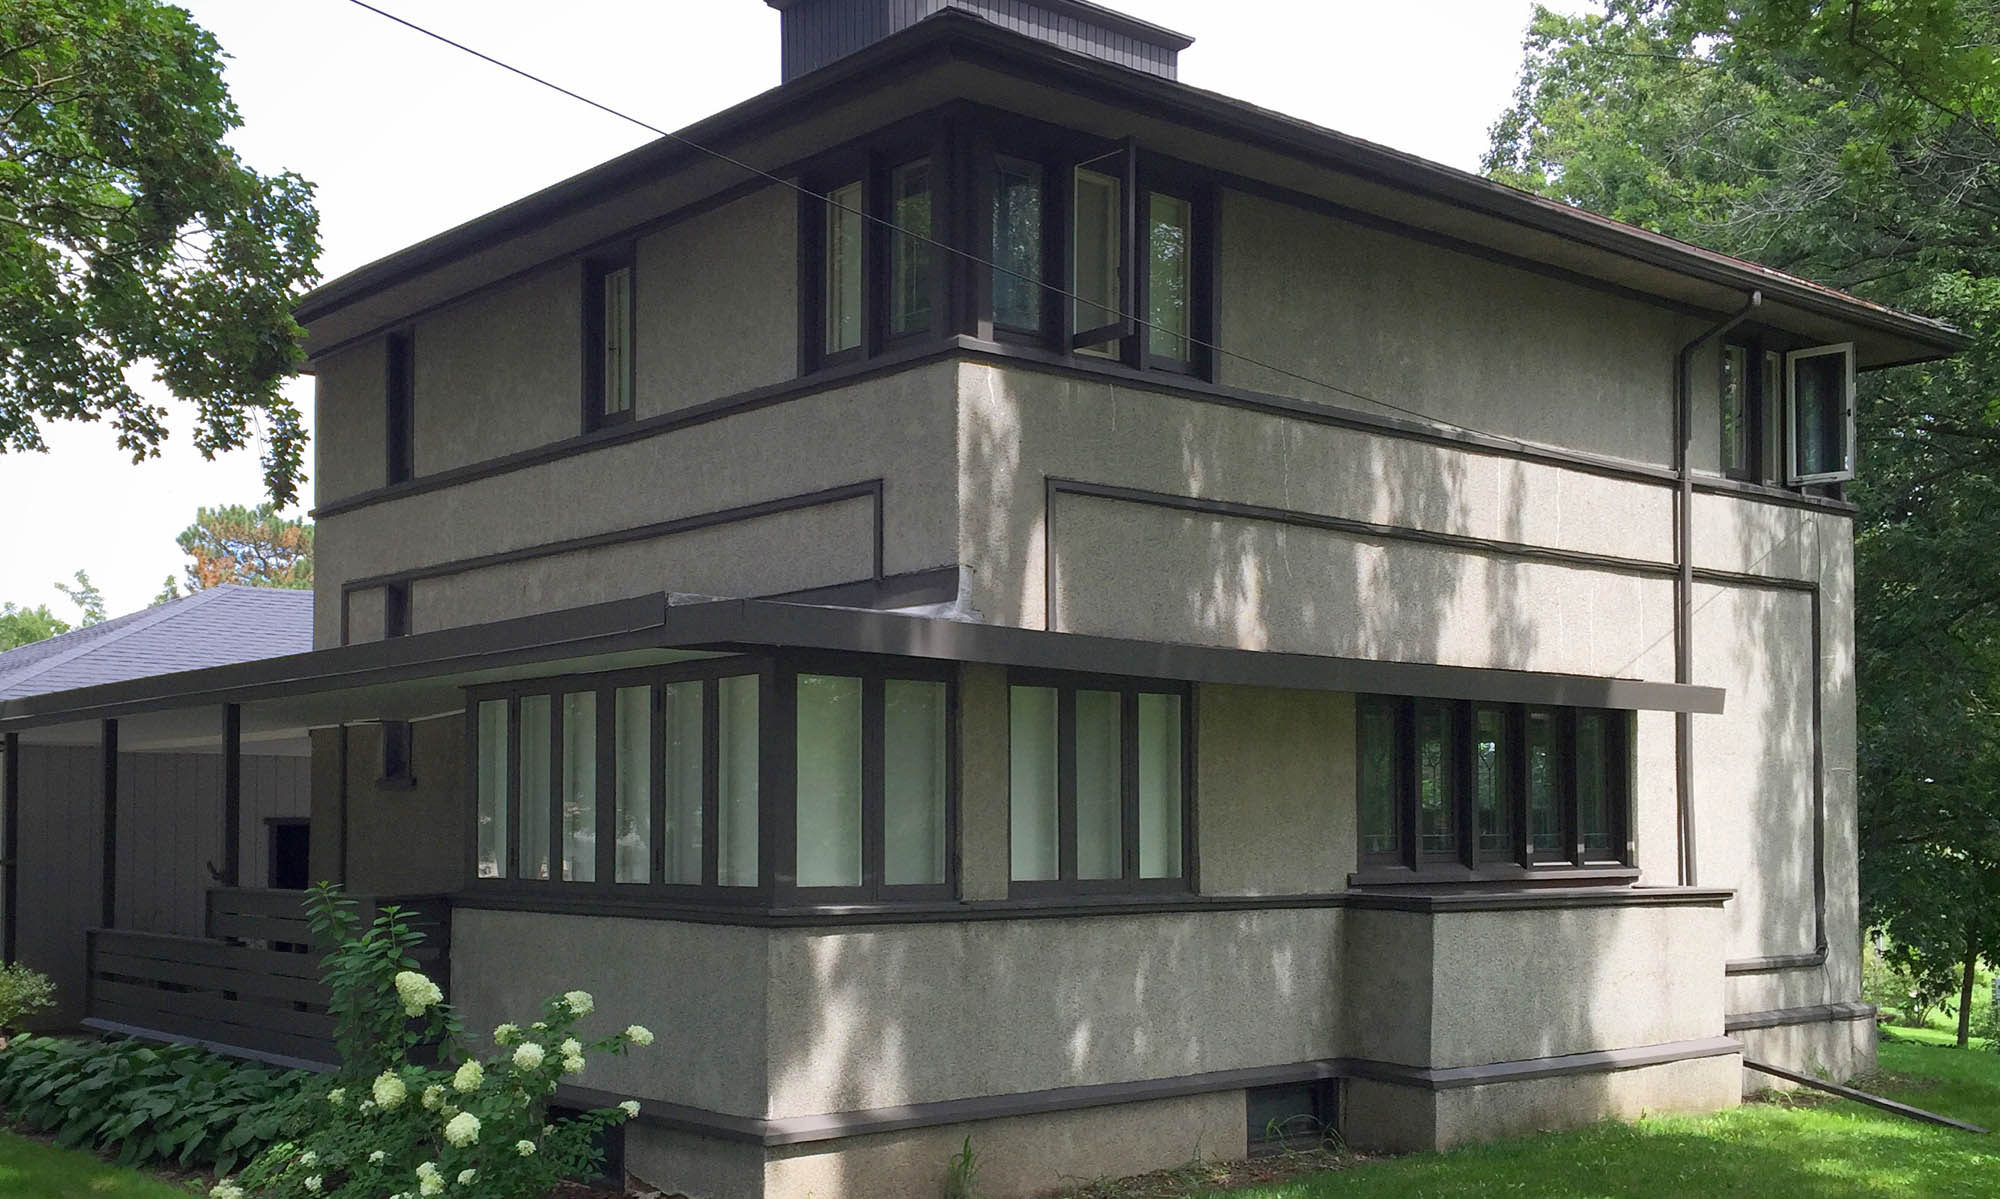 The Delbert W. Meier House